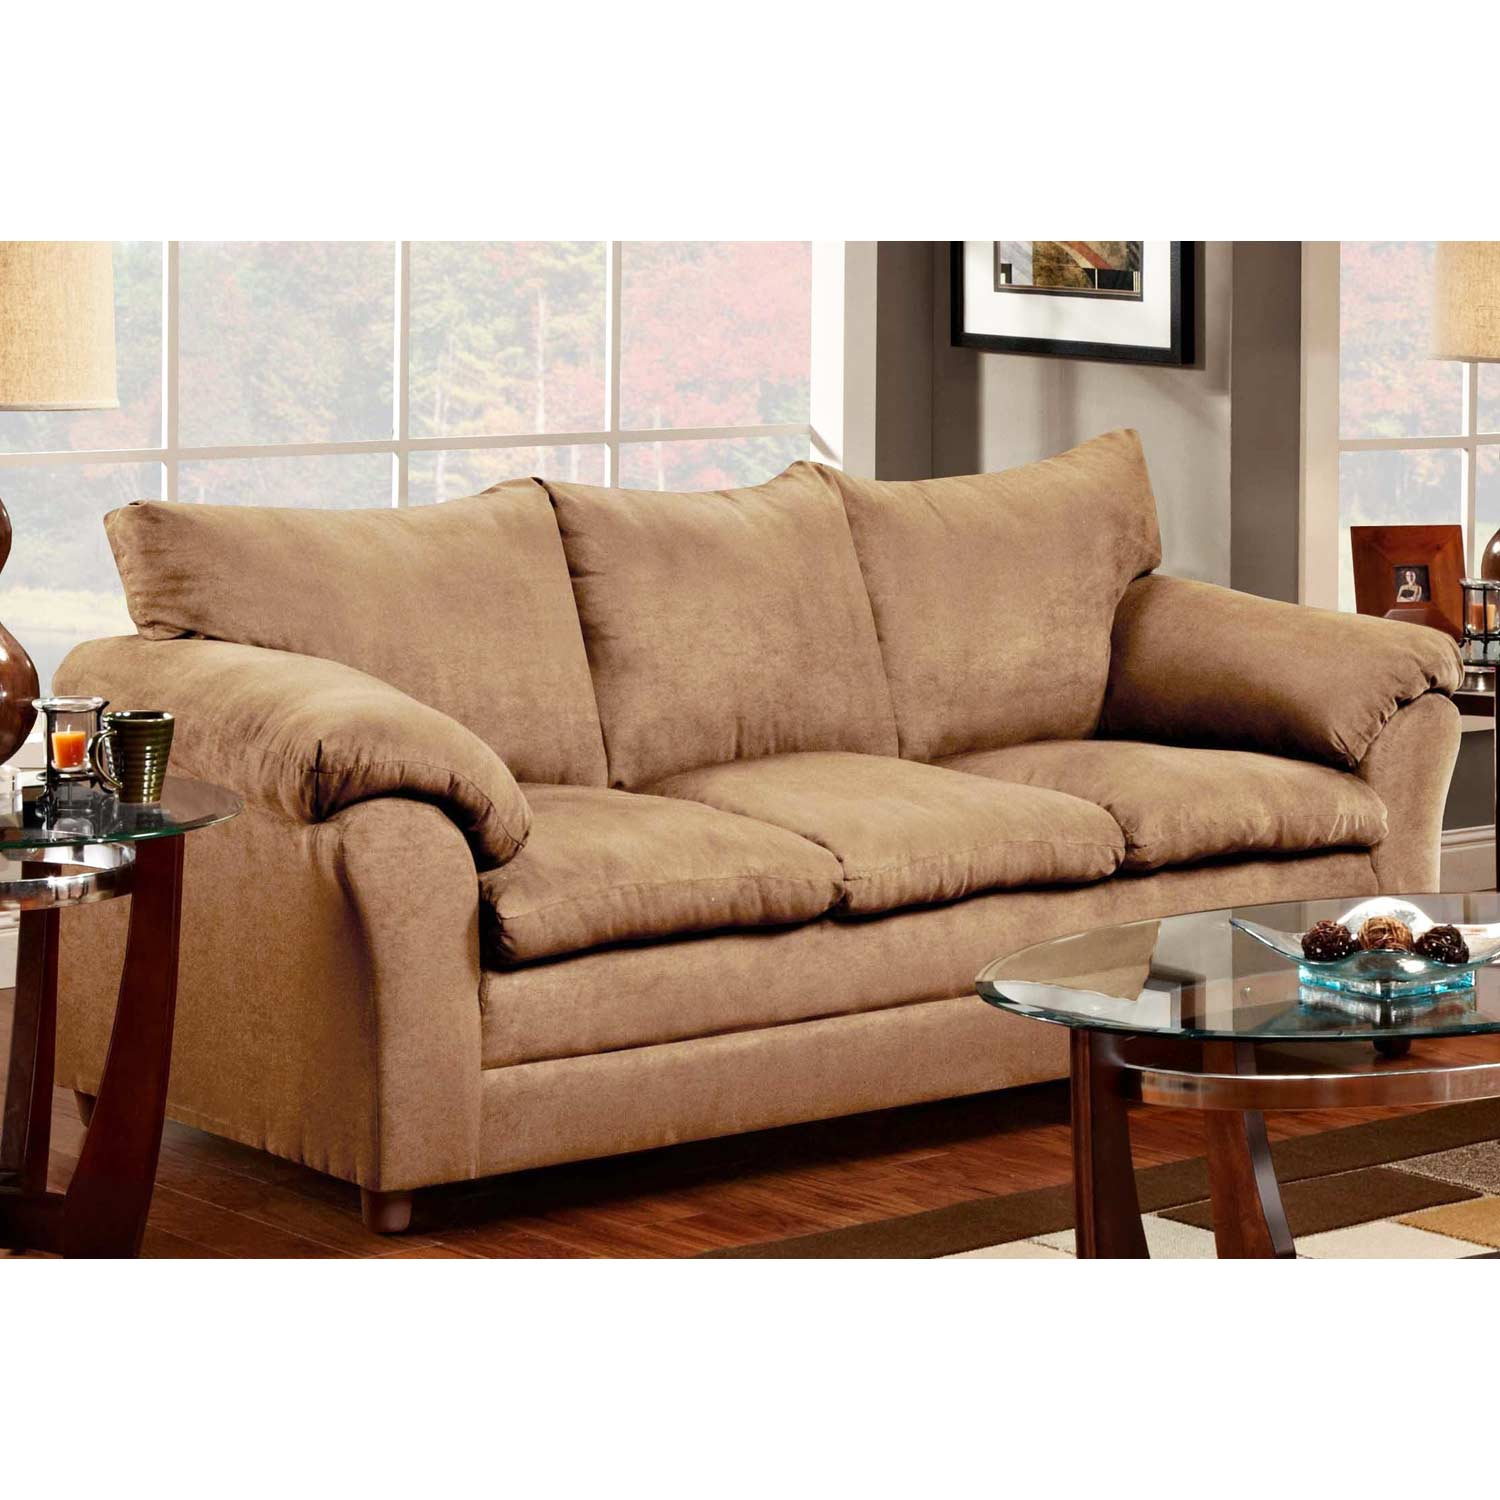 Gail Pillow Top Arm Sofa - Victory Lane Taupe - CHF-471150-S-VLT